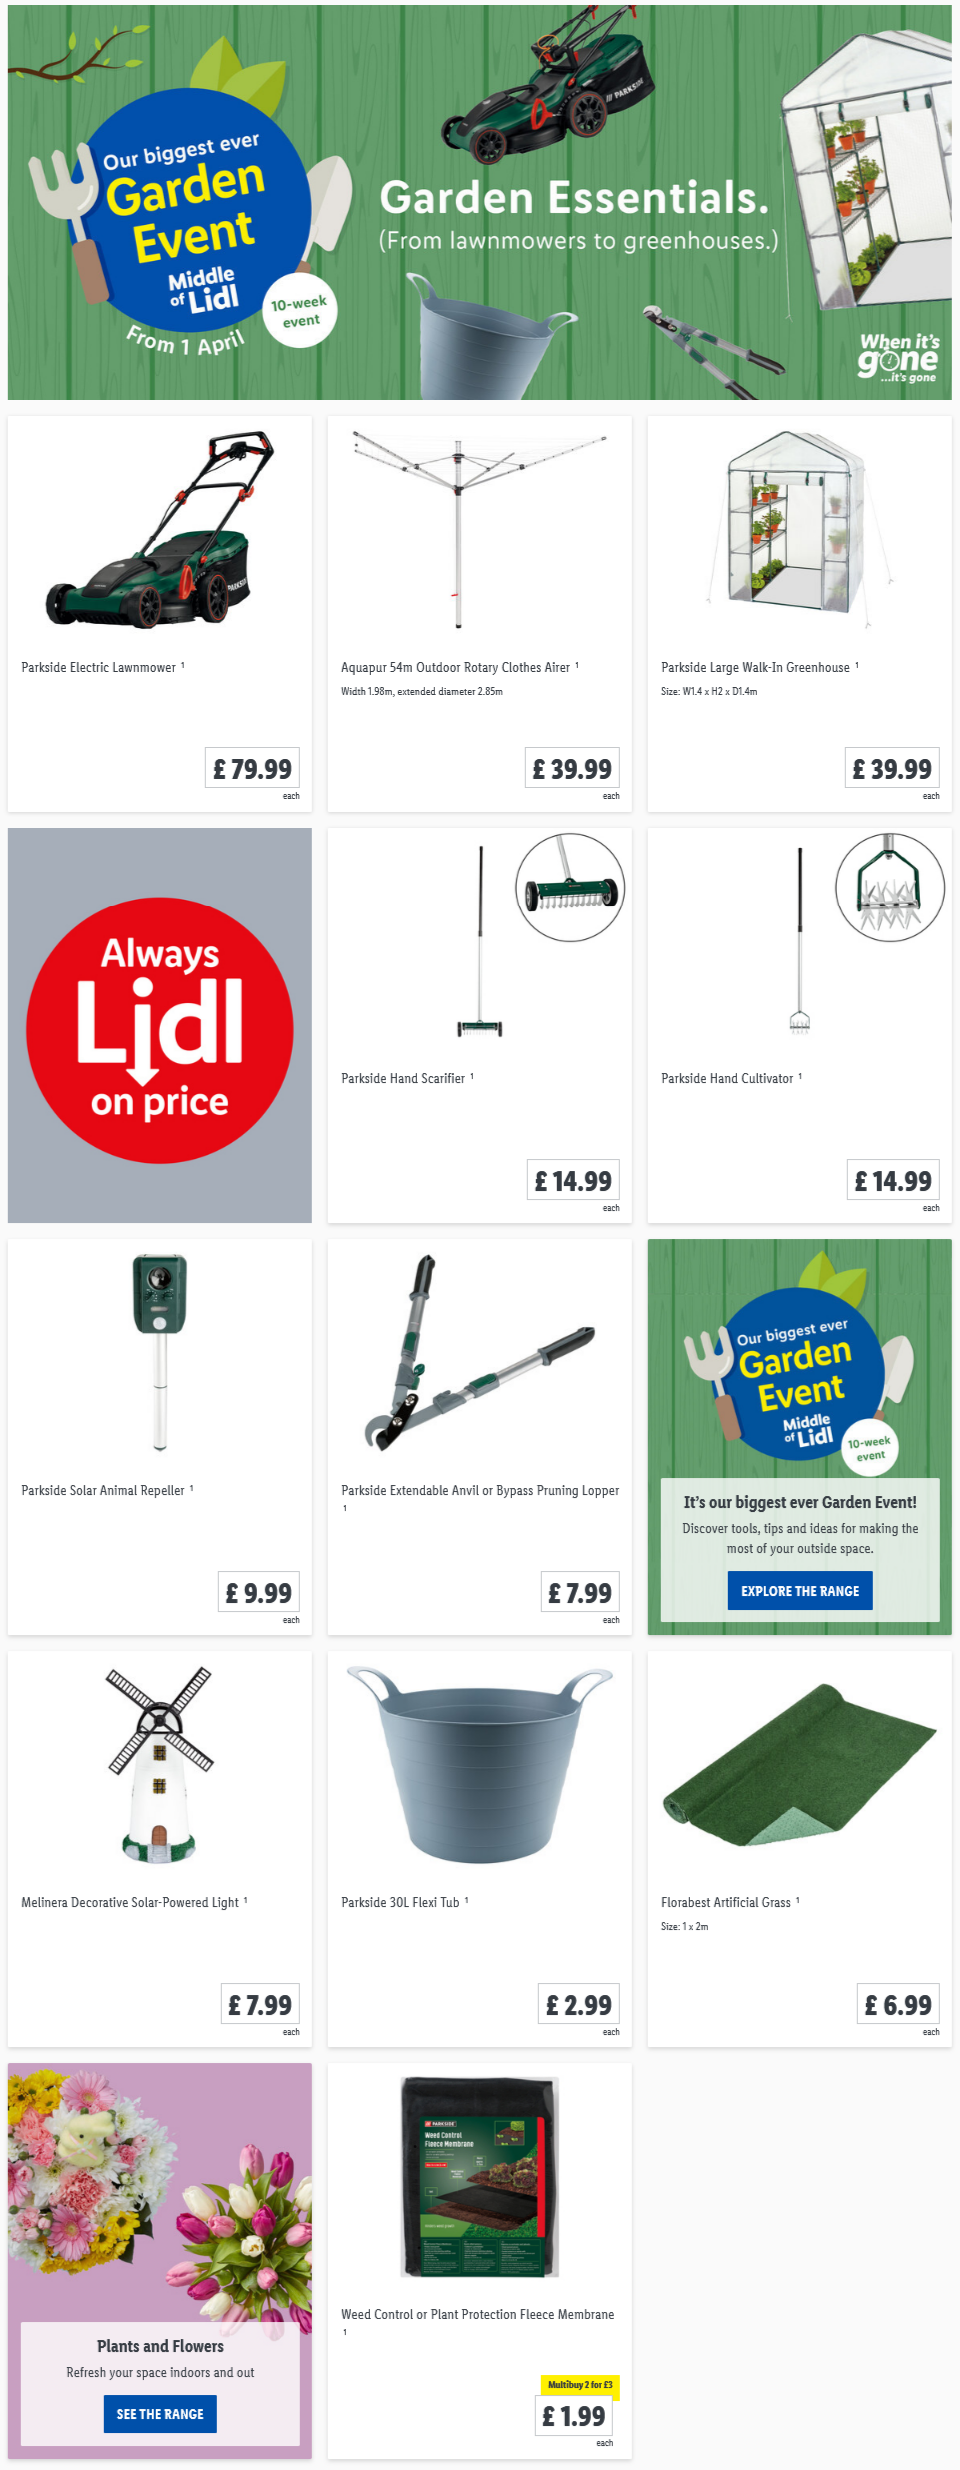 LIDL Offers this Thursday From 1st April 2021 LIDL Gardening Event